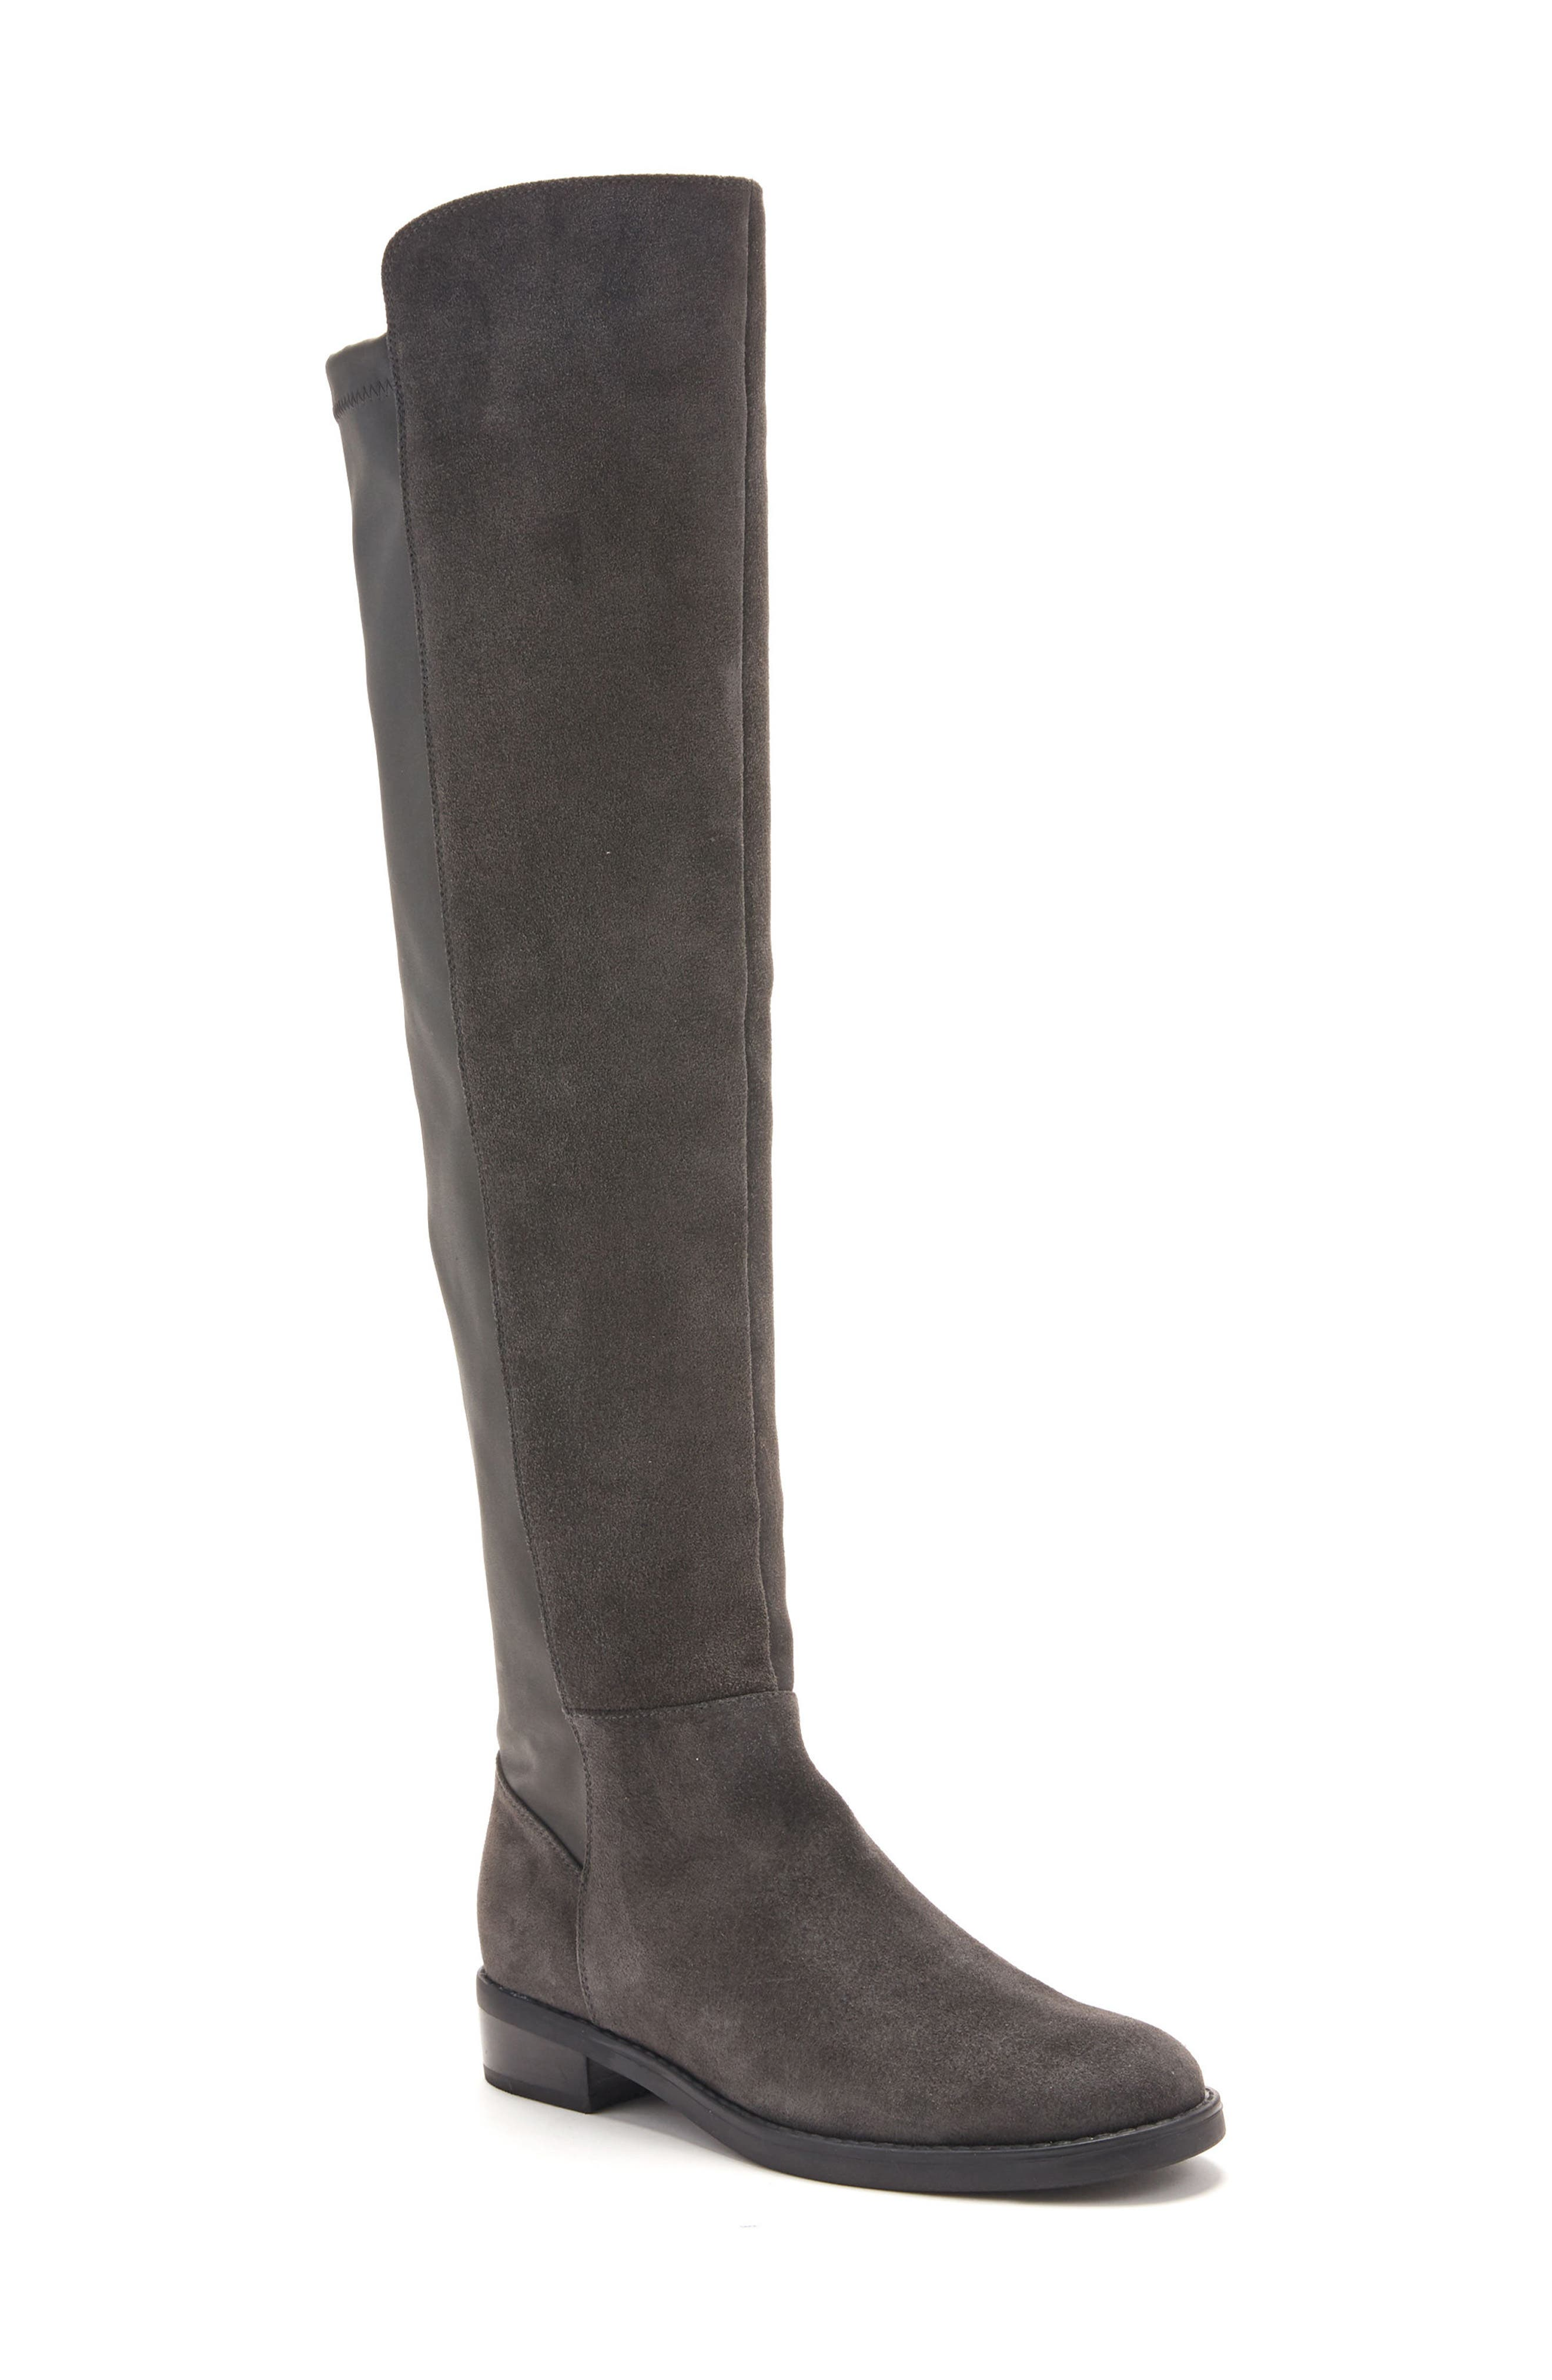 Blondo Olivia Knee High Boot (Women)